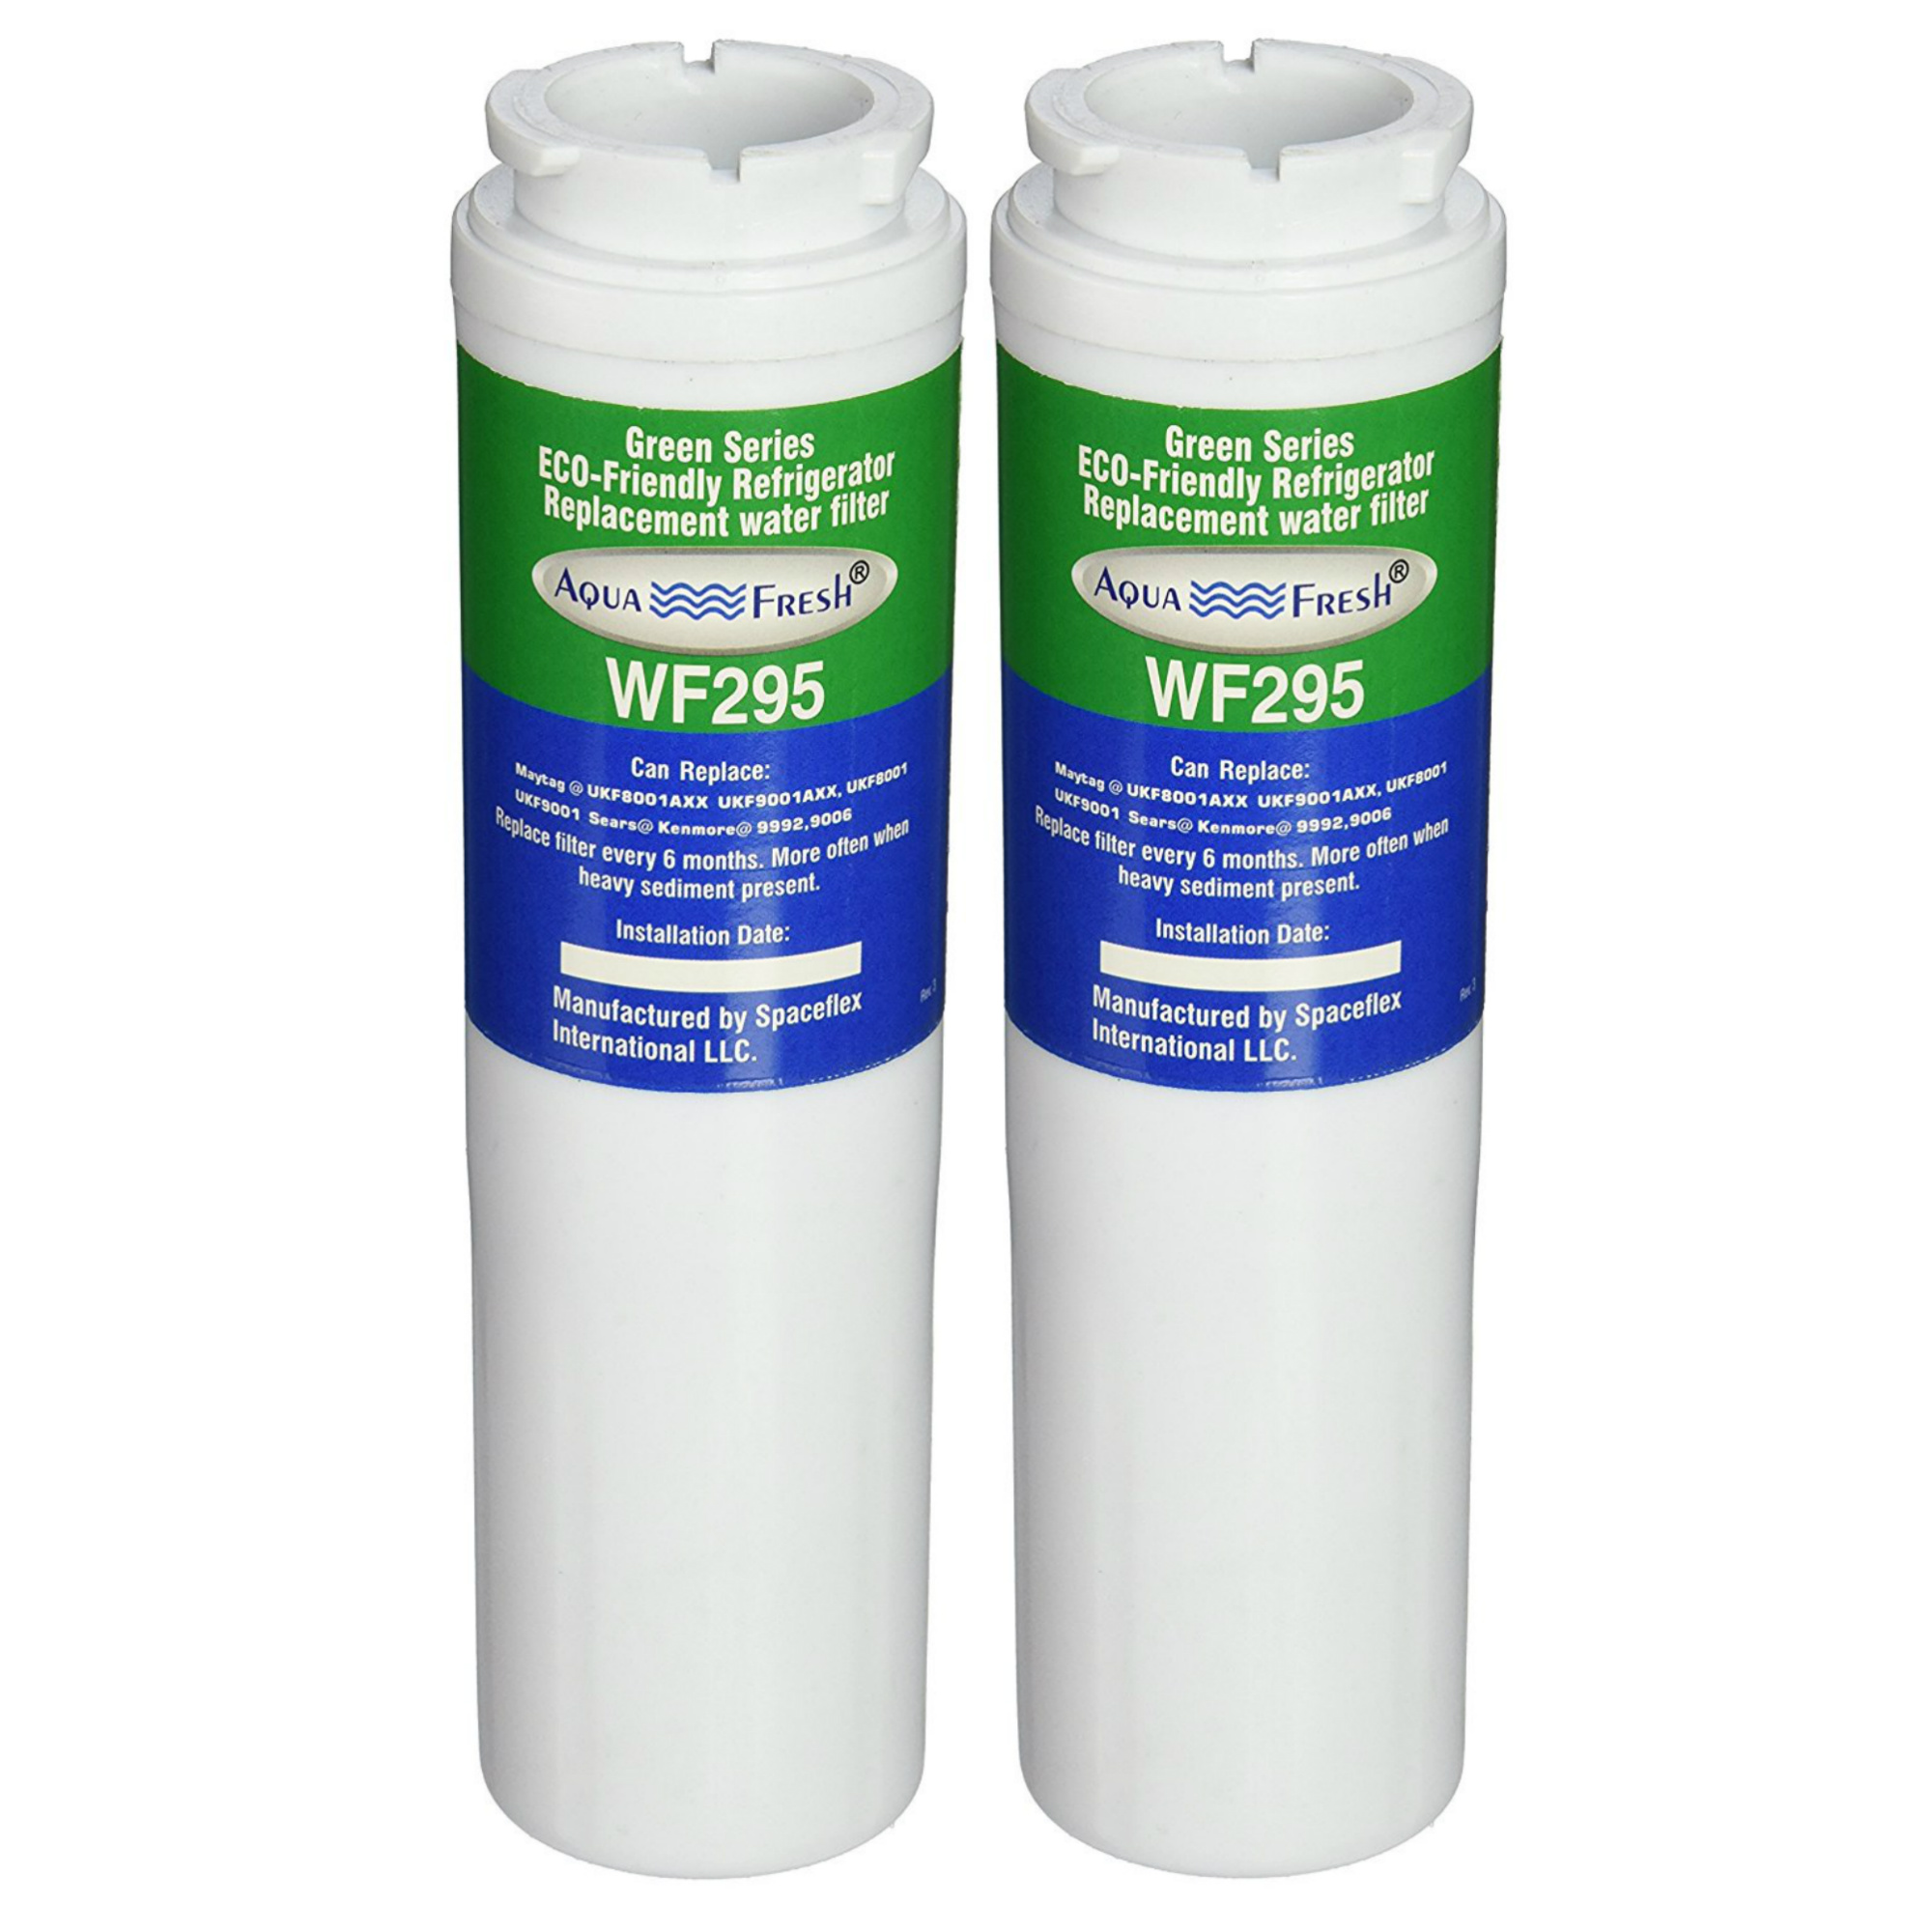 Replacement Water Filter For Maytag WF295 Refrigerator Water Filter by Aqua Fresh (2 Pack)